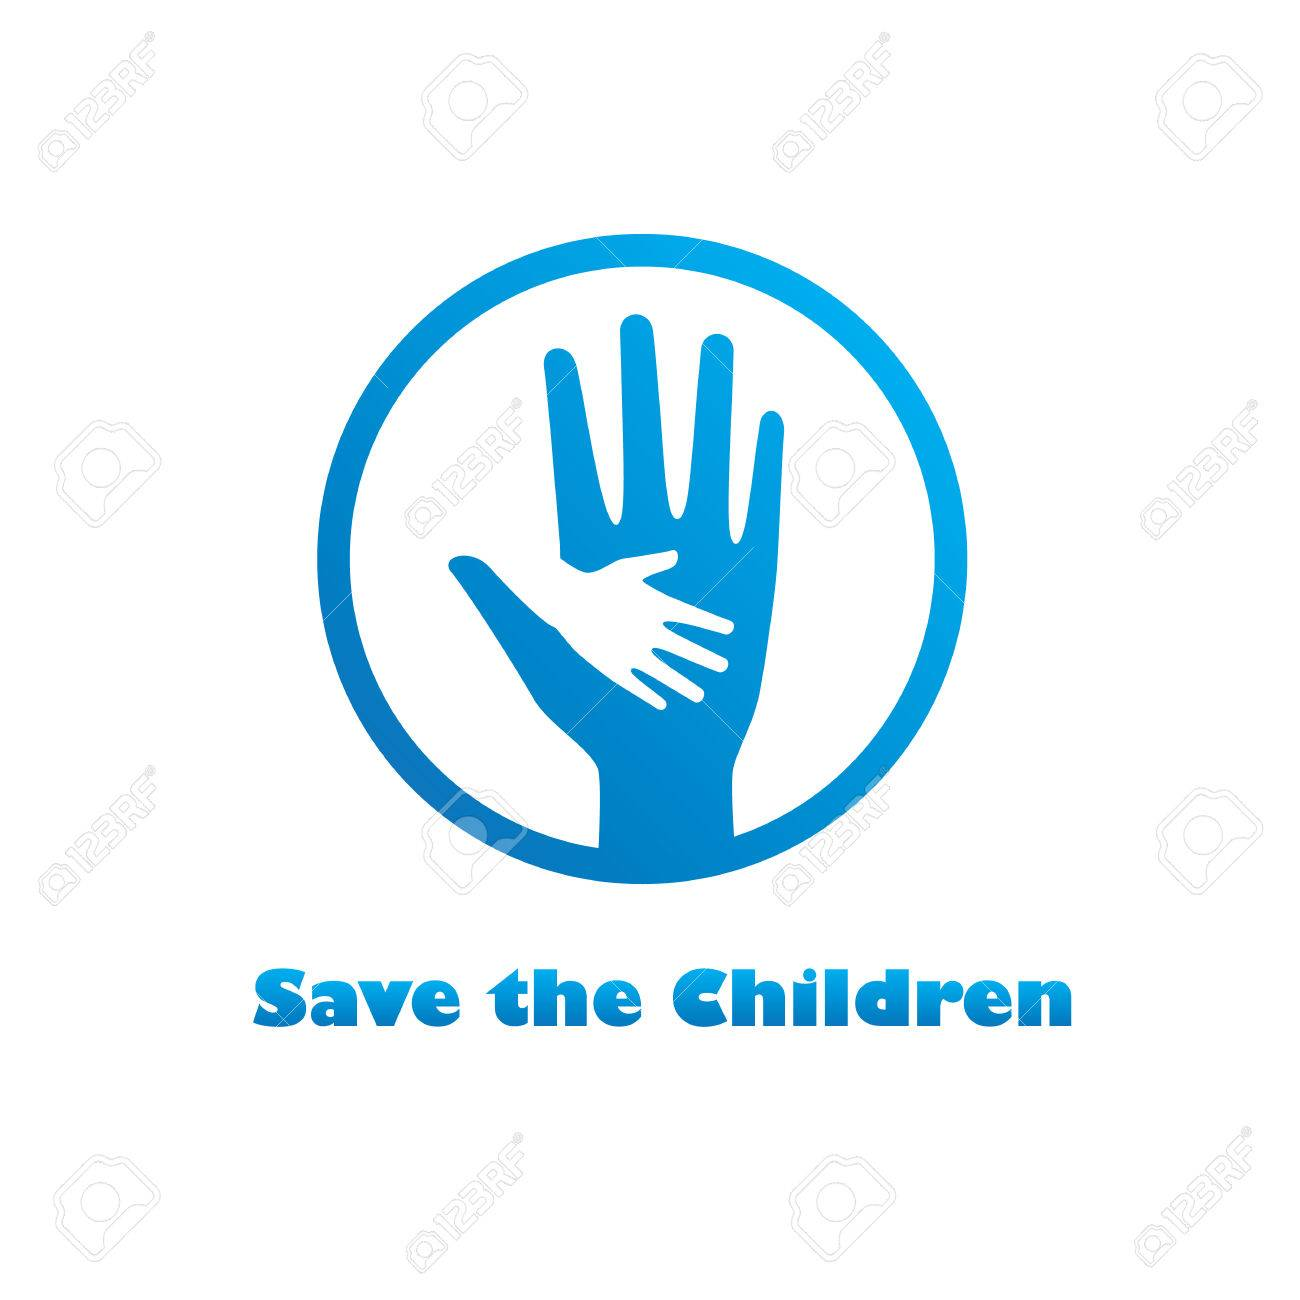 Save the children logo  Save kids from torture, hungry for their